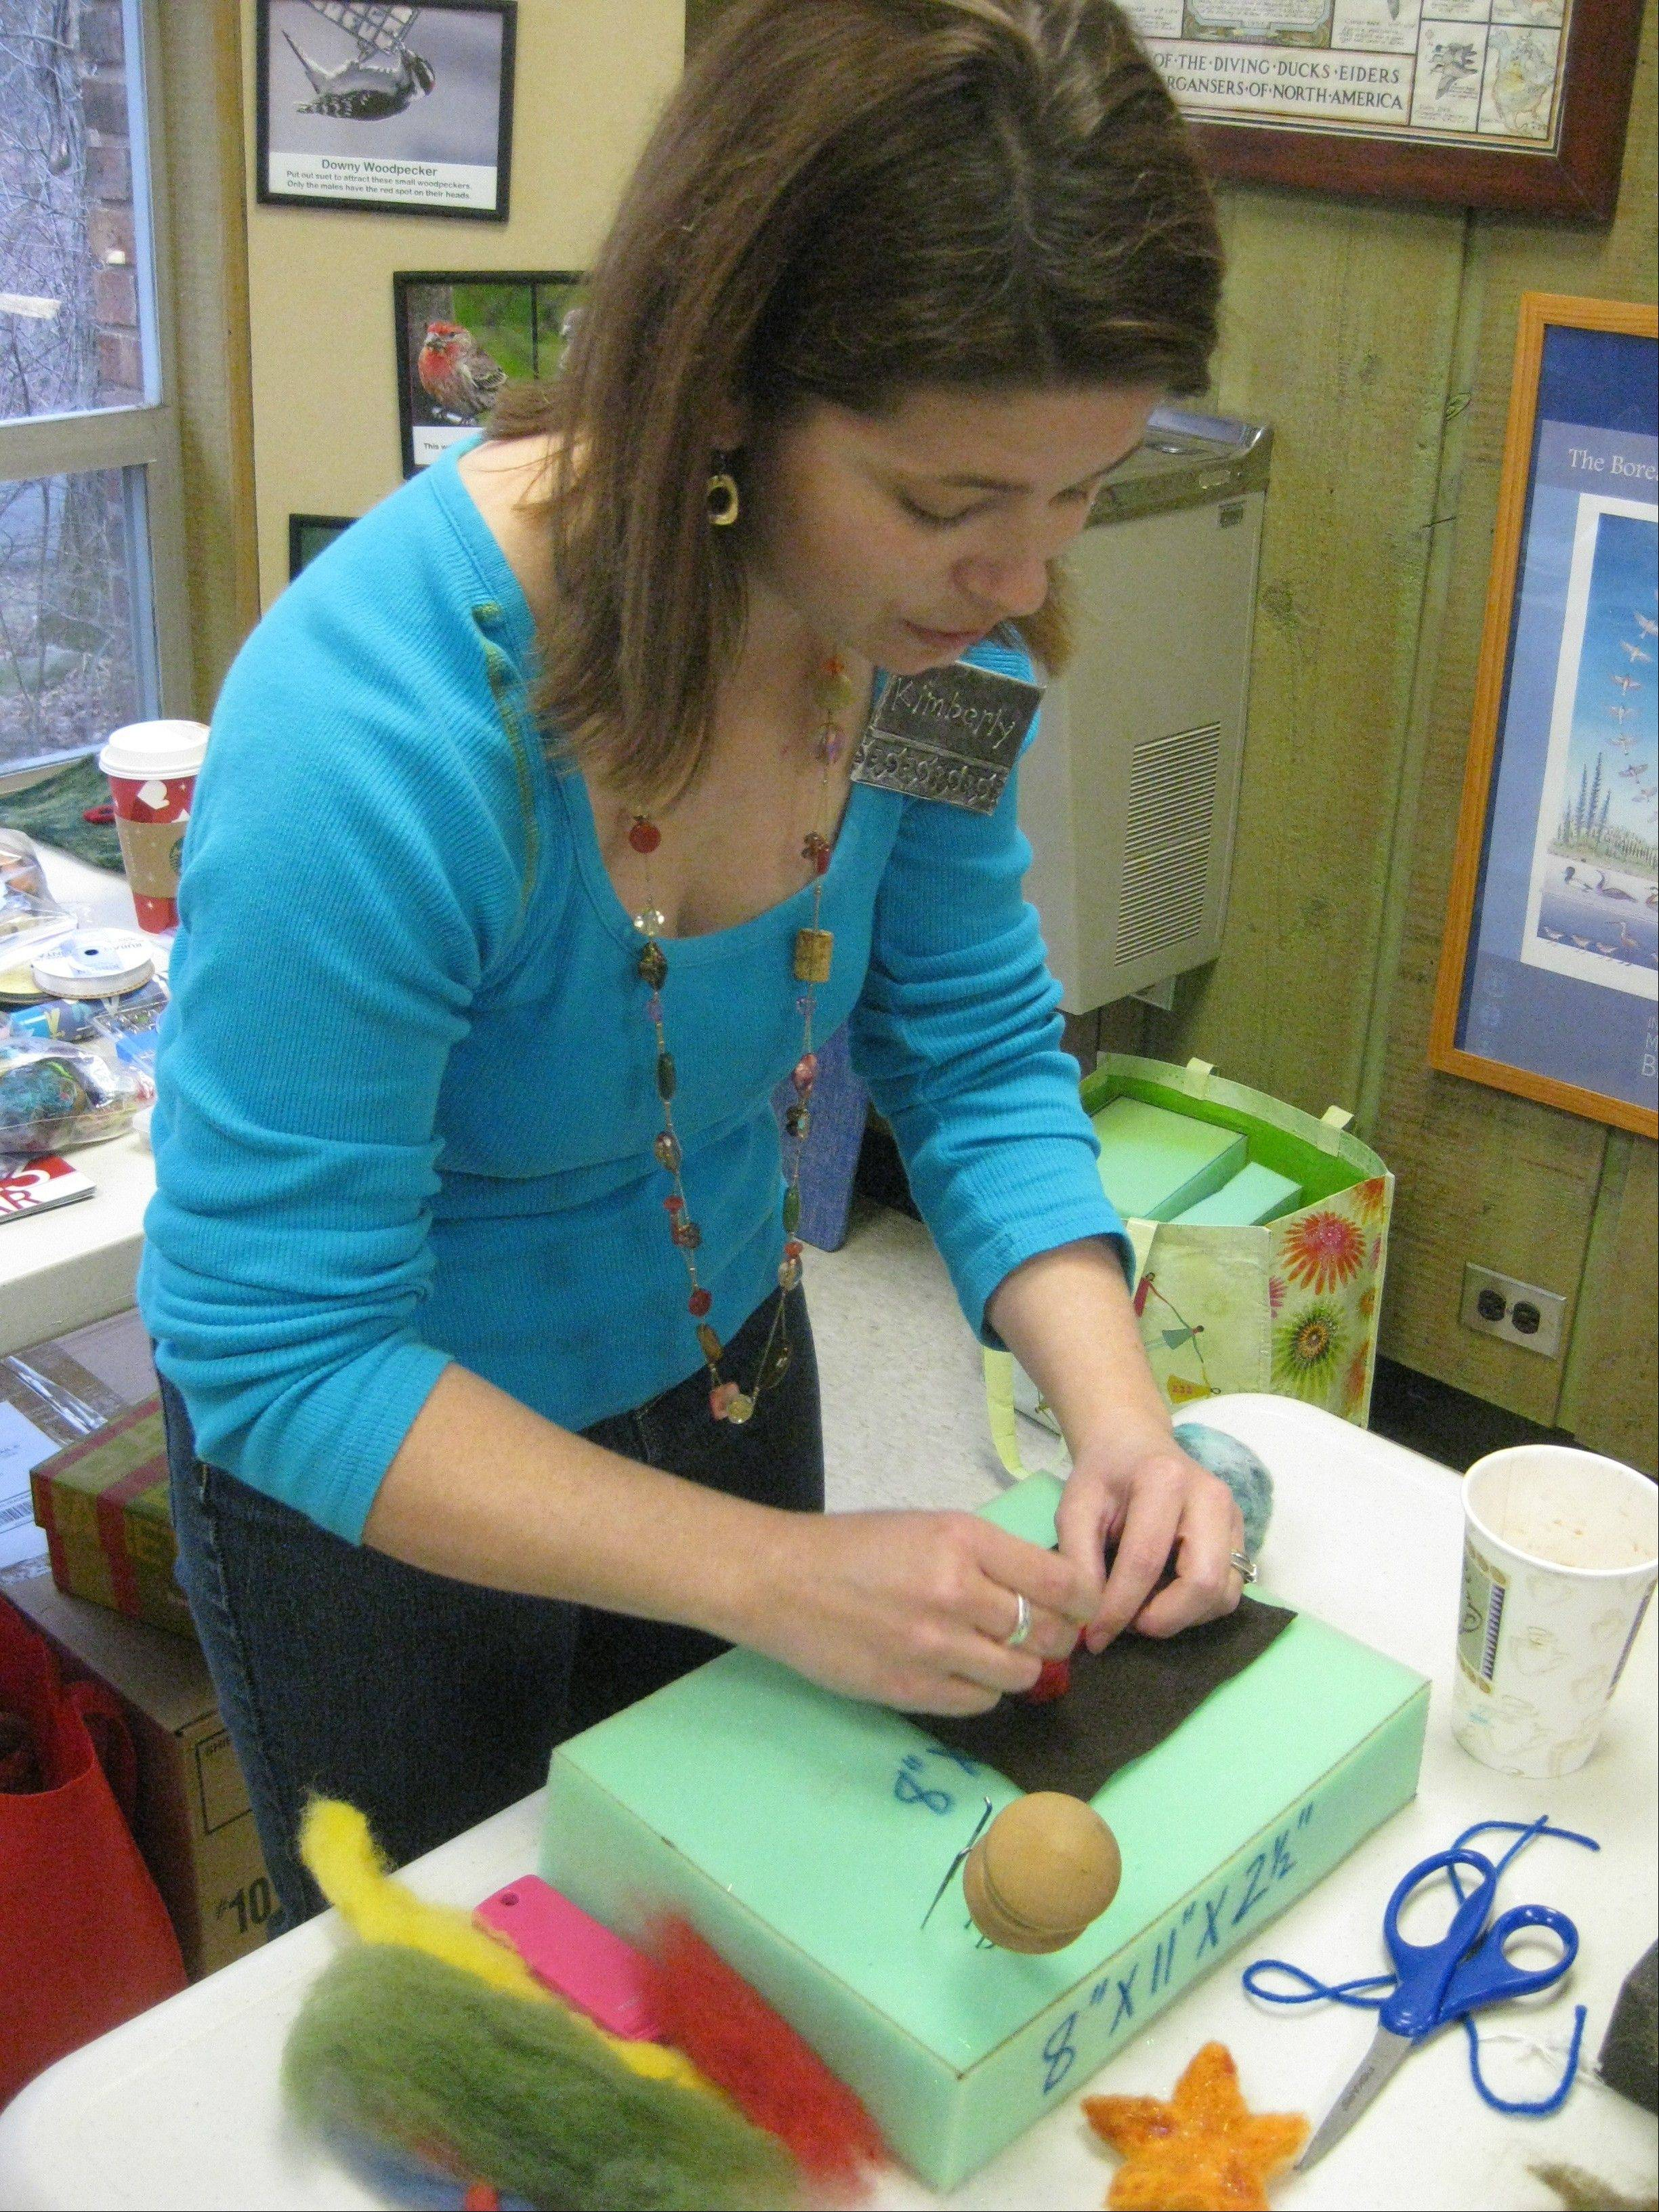 Artist Kimberly Butts demonstrates how to felt wool during a recent workshop at Crabtree Nature Center in Barrington Hills.